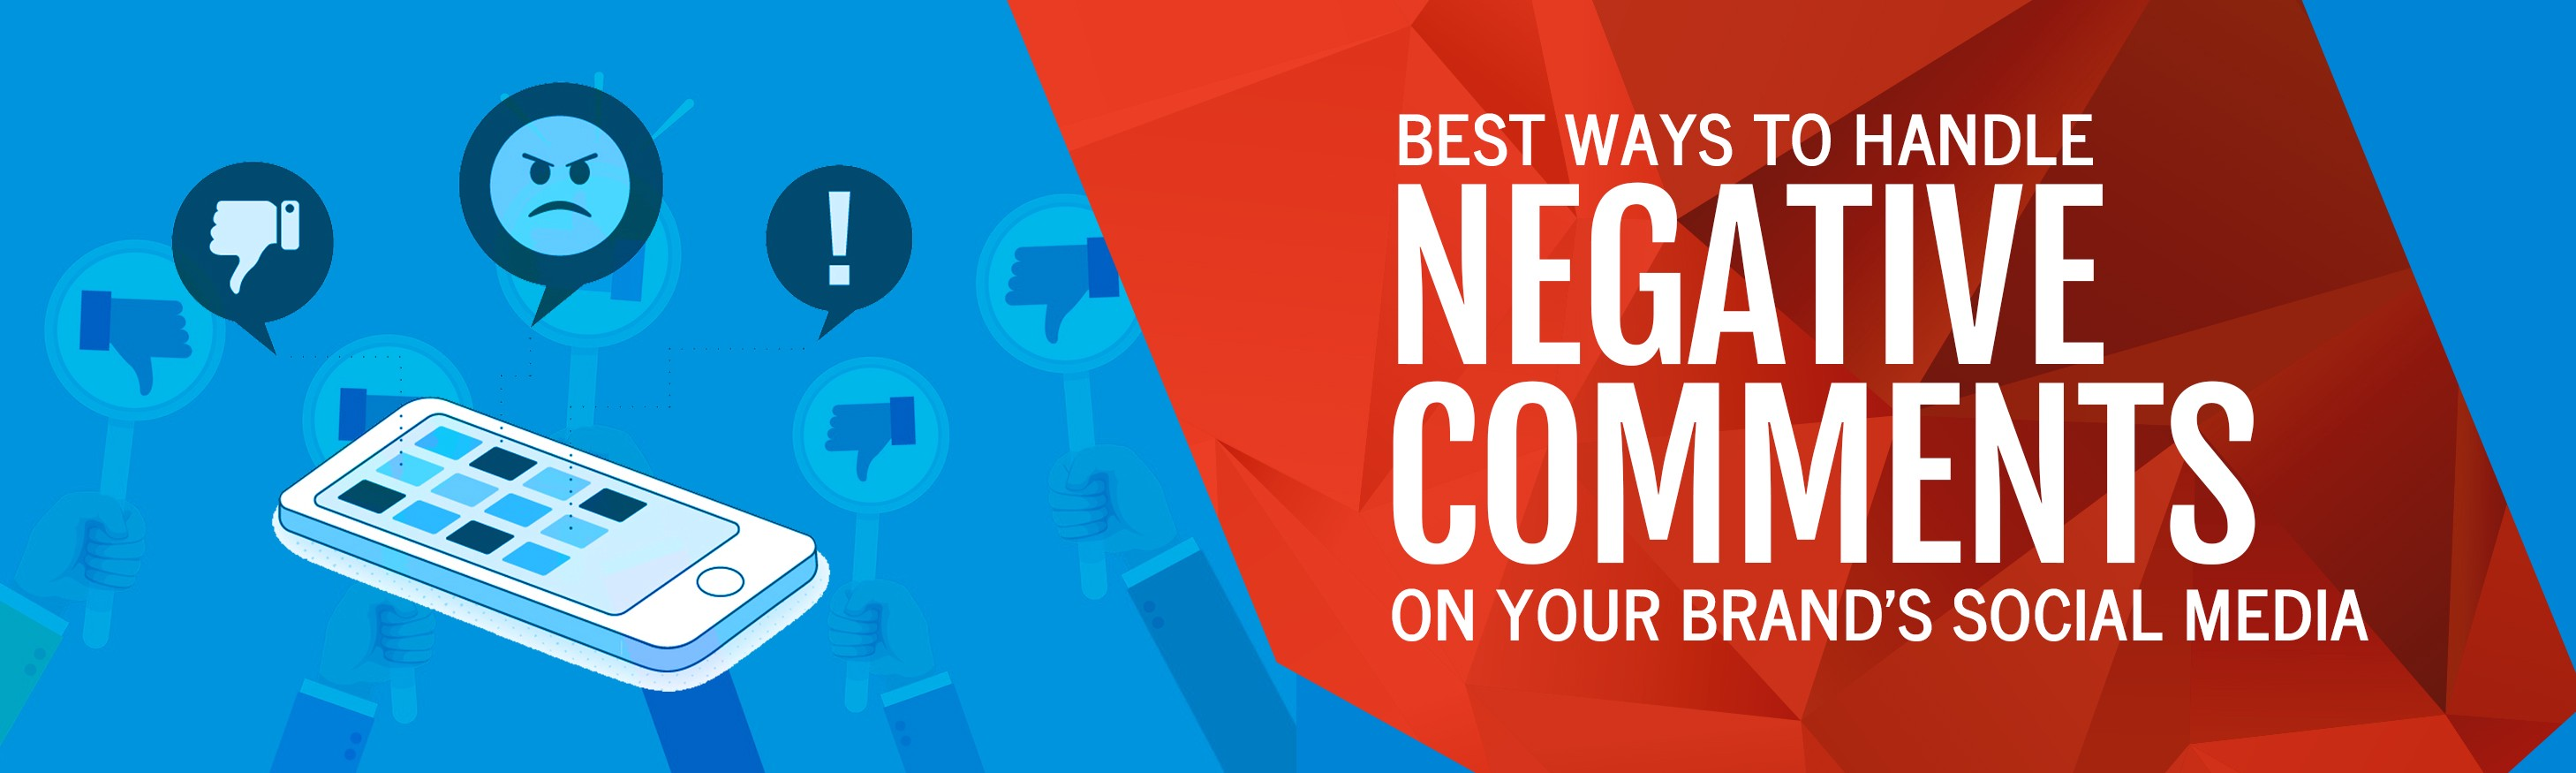 Best Ways to Handle Negative Comments on Your Brand's Social Media